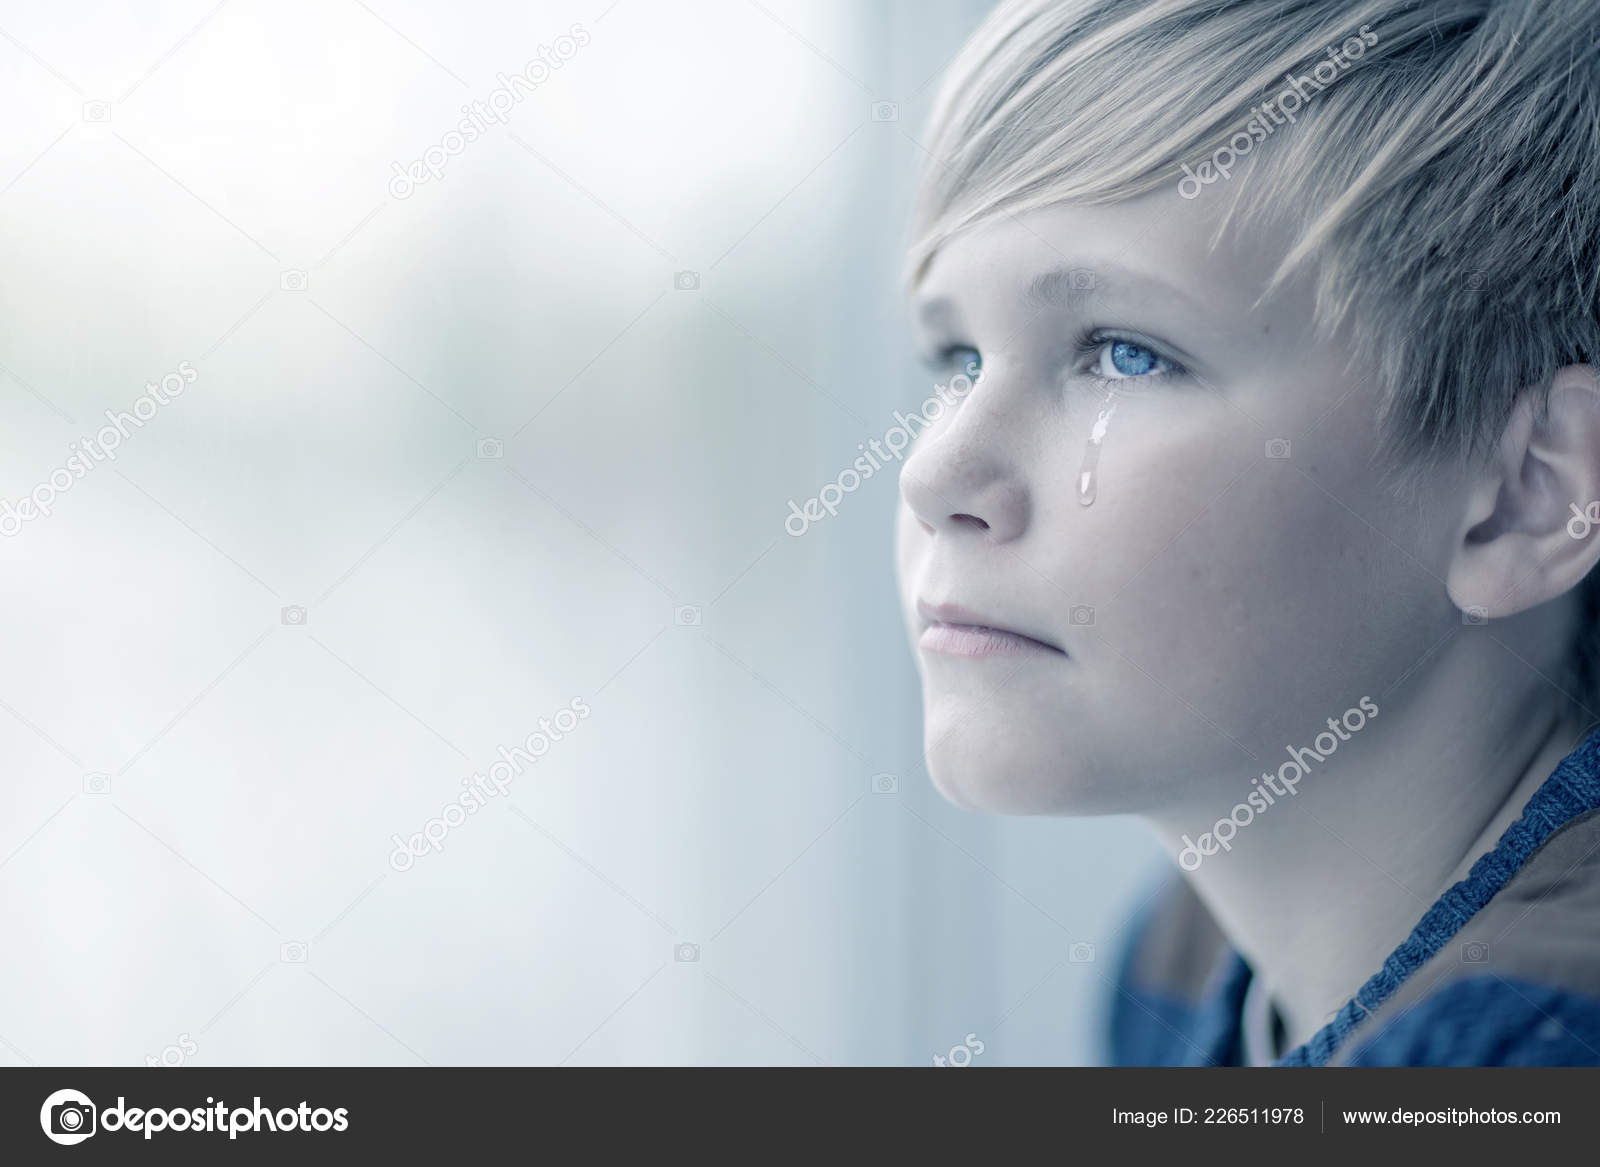 Crying boy looks out the window portrait of sad blond teen 12 14 year old stock image